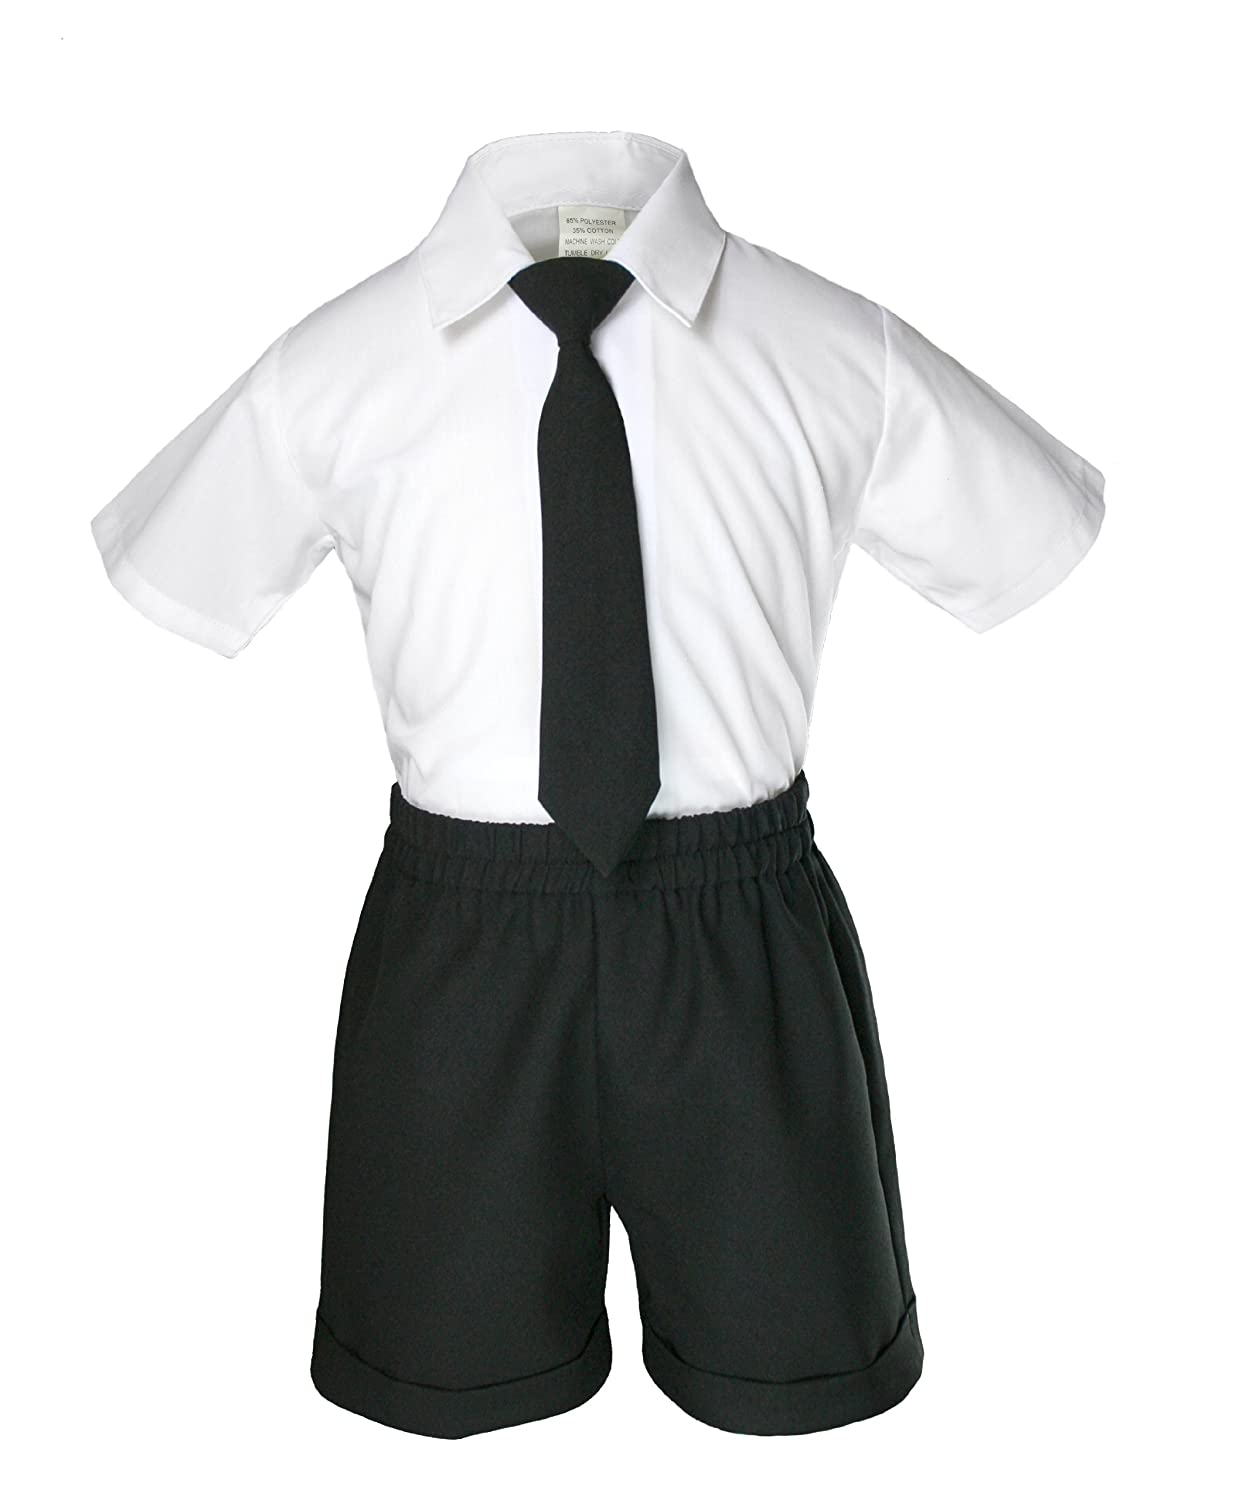 S: 0-6 months Boys Black Shorts Vest Sets Suits Outfits Extra Gold Necktie Baby Toddler